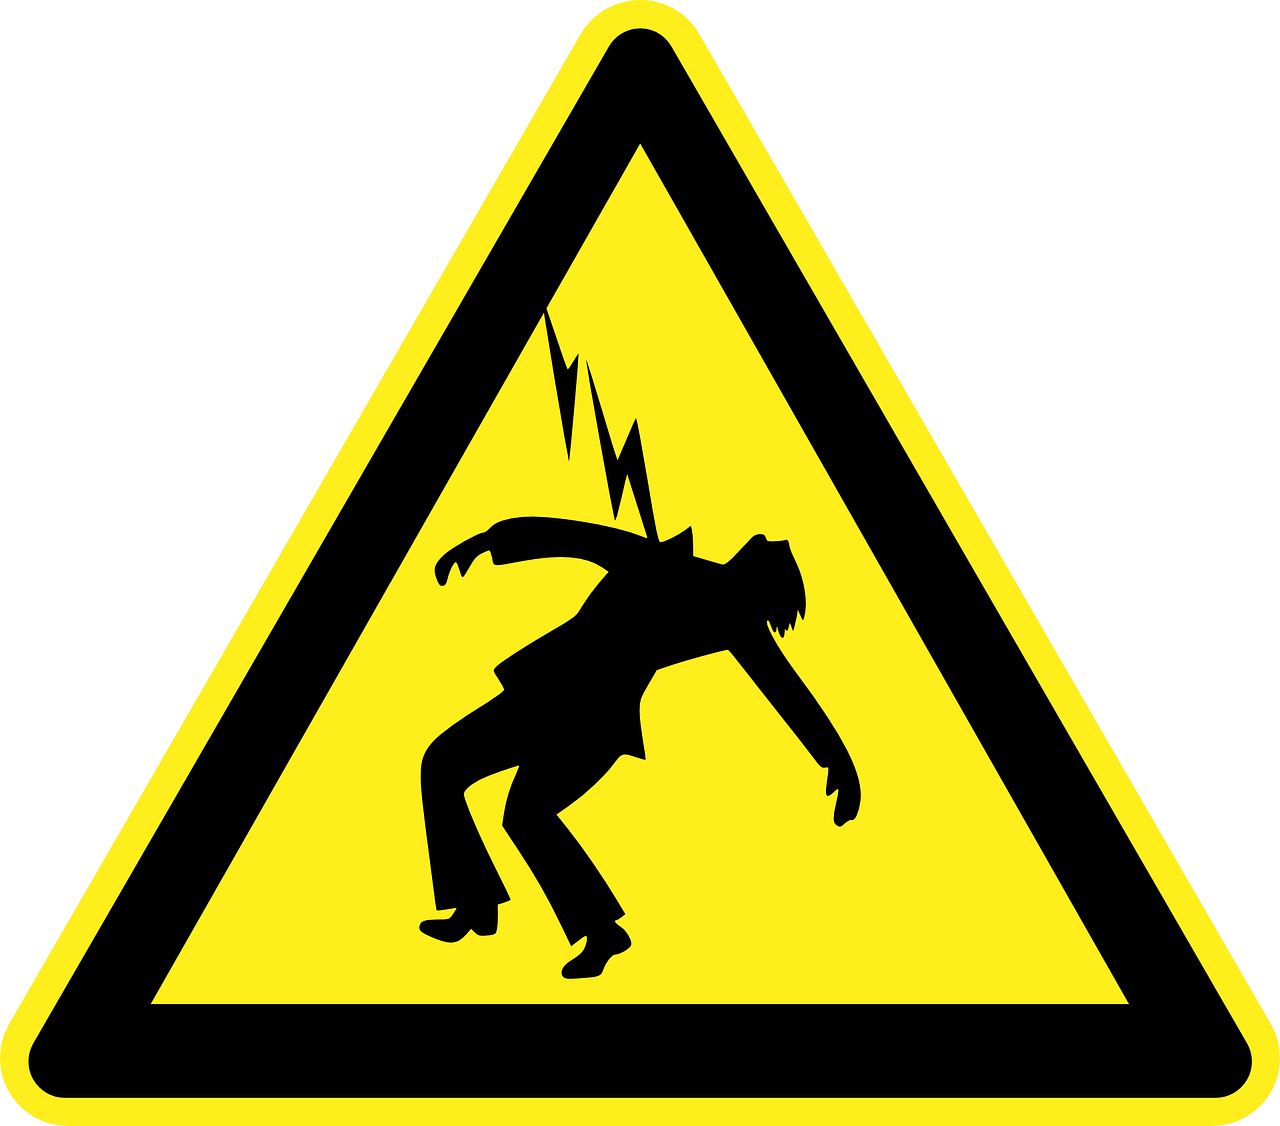 Man Gets Electric Shock. Stock Vector Illustration 262069655 ...